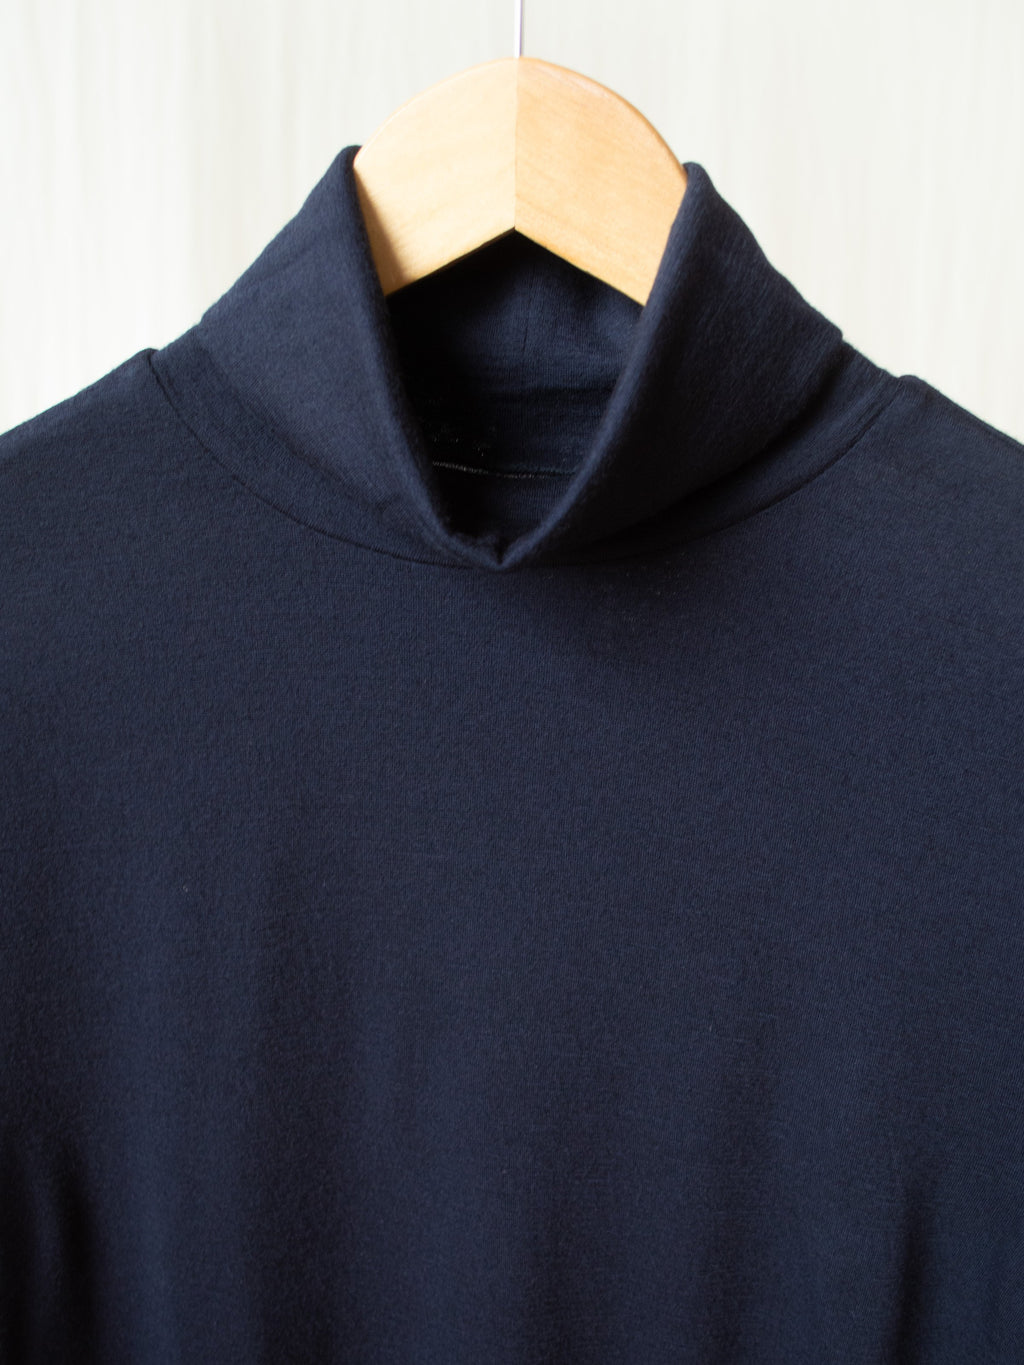 Washable High Gauge Wool Turtleneck - Navy